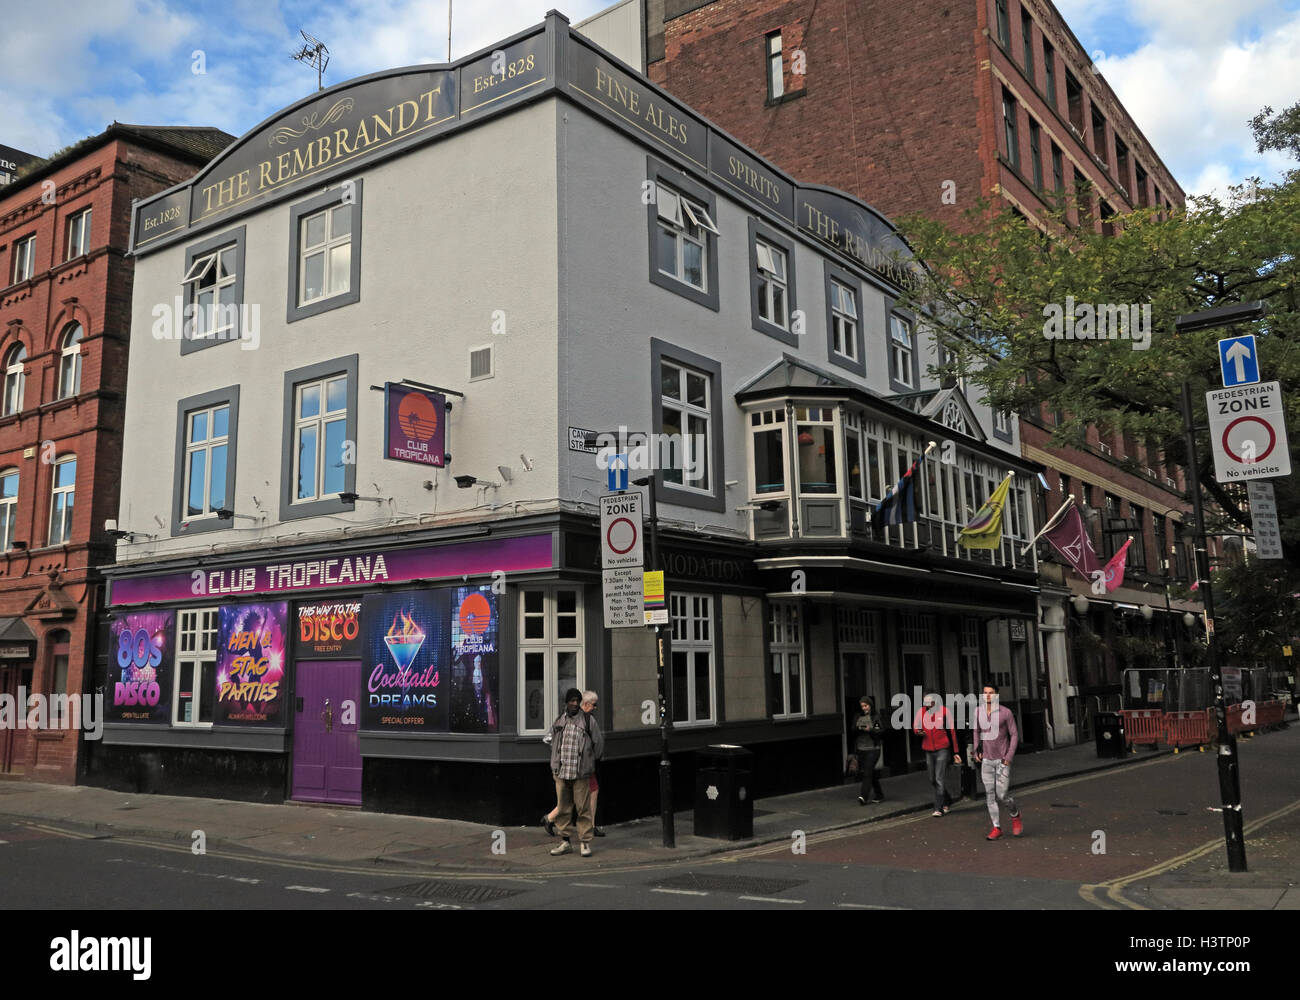 canals,seedy,entertainment,bar,bars,LGBT,fun,relaxed,day,time,daytime,pub,pubs,club,clubs,gaycanal,c,anal,homosexual,homosexuality,city,centre,nightlife,people,somerville,life,pride,relax,relaxed,Rembrandt,pub,hotel,bar,Inn,trees,corner,gay city,Manchester Pride,GoTonySmith,@HotpixUK,Tony,Smith,UK,GB,Great,Britain,United,Kingdom,English,British,England,Gay,village,LGBT,pride,GayPride,CanalSt,CanalStreet,Buy Pictures of,Buy Images Of,Images of,Stock Images,Tony Smith,United Kingdom,Great Britain,British Isles,Gay Village,Canal Street,Canal St